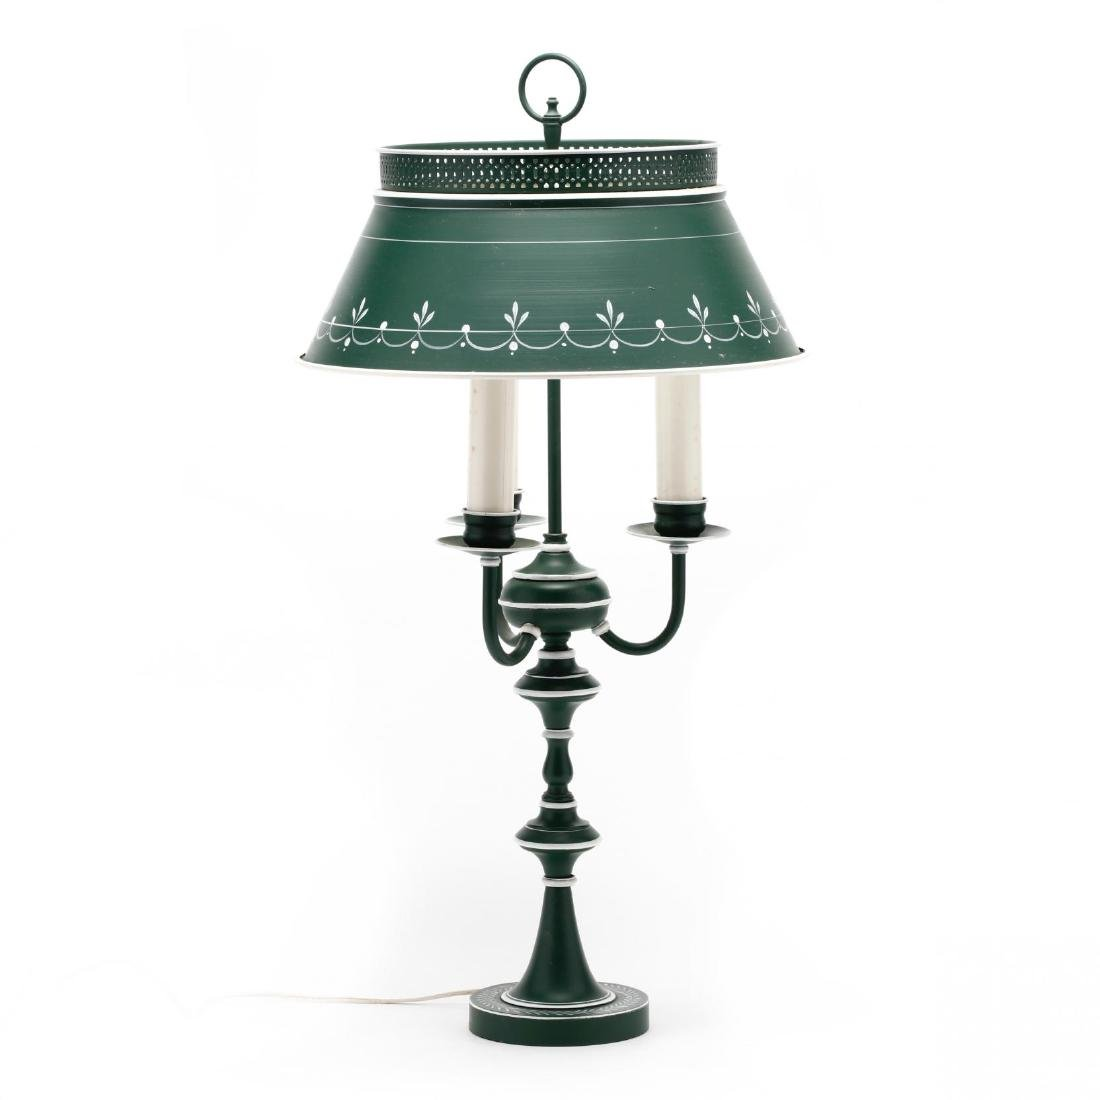 Vintage Tole Ware Table Lamp